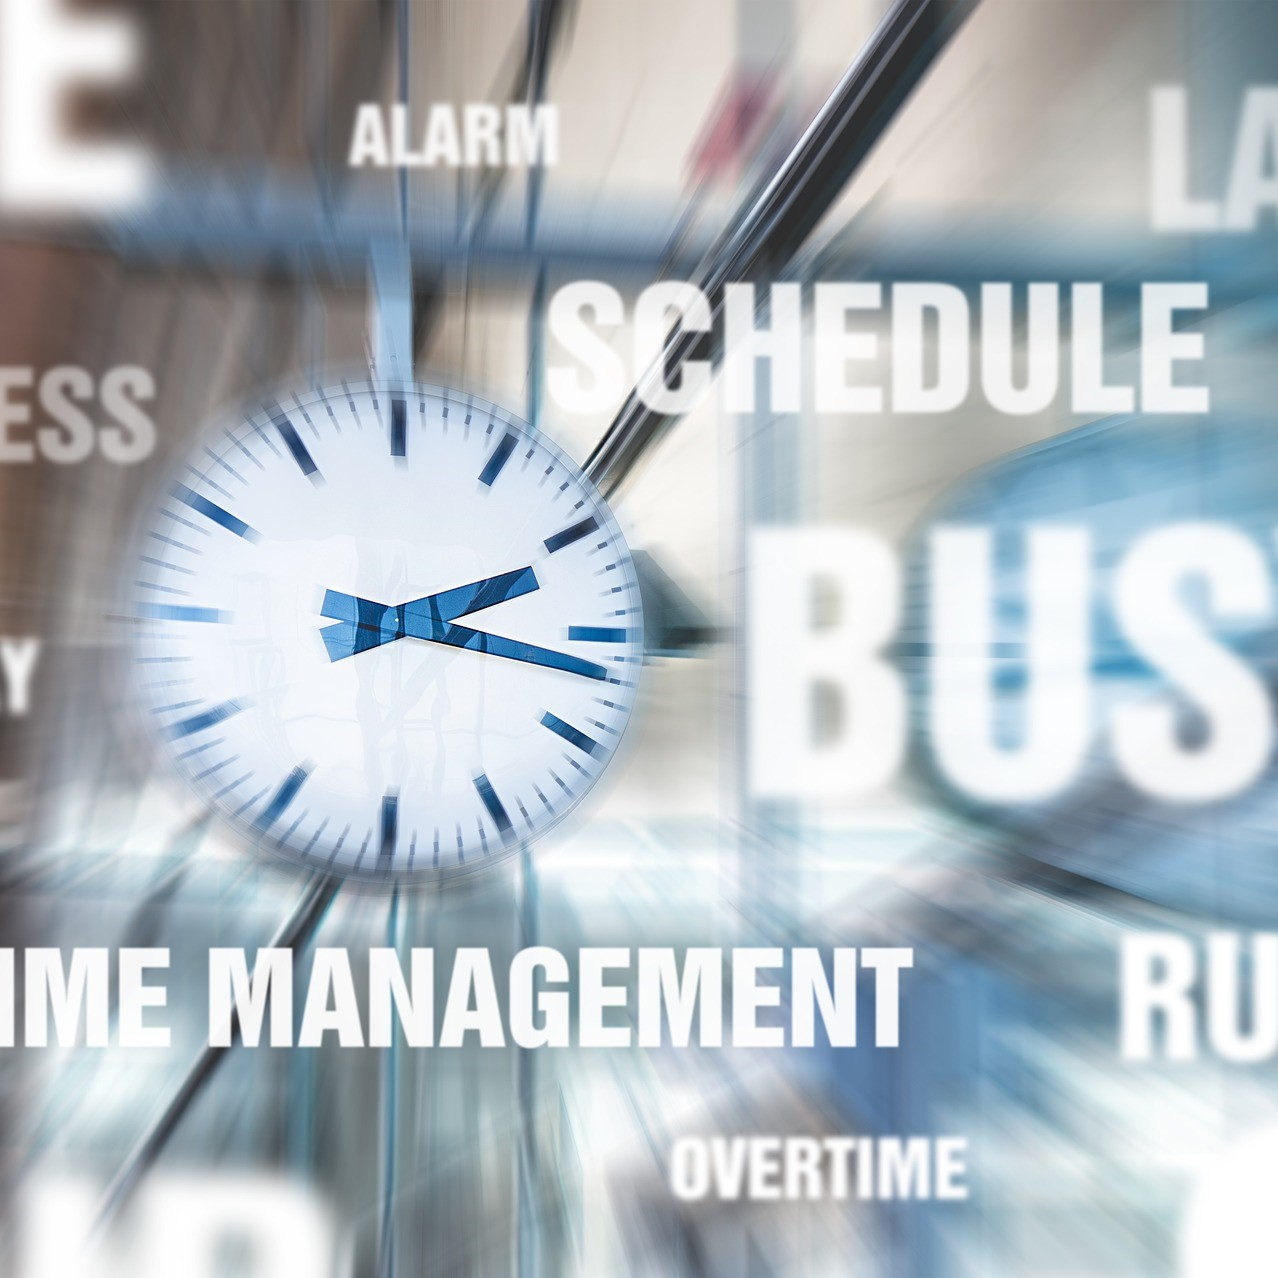 Time Management - Hou uw inbox leeg!